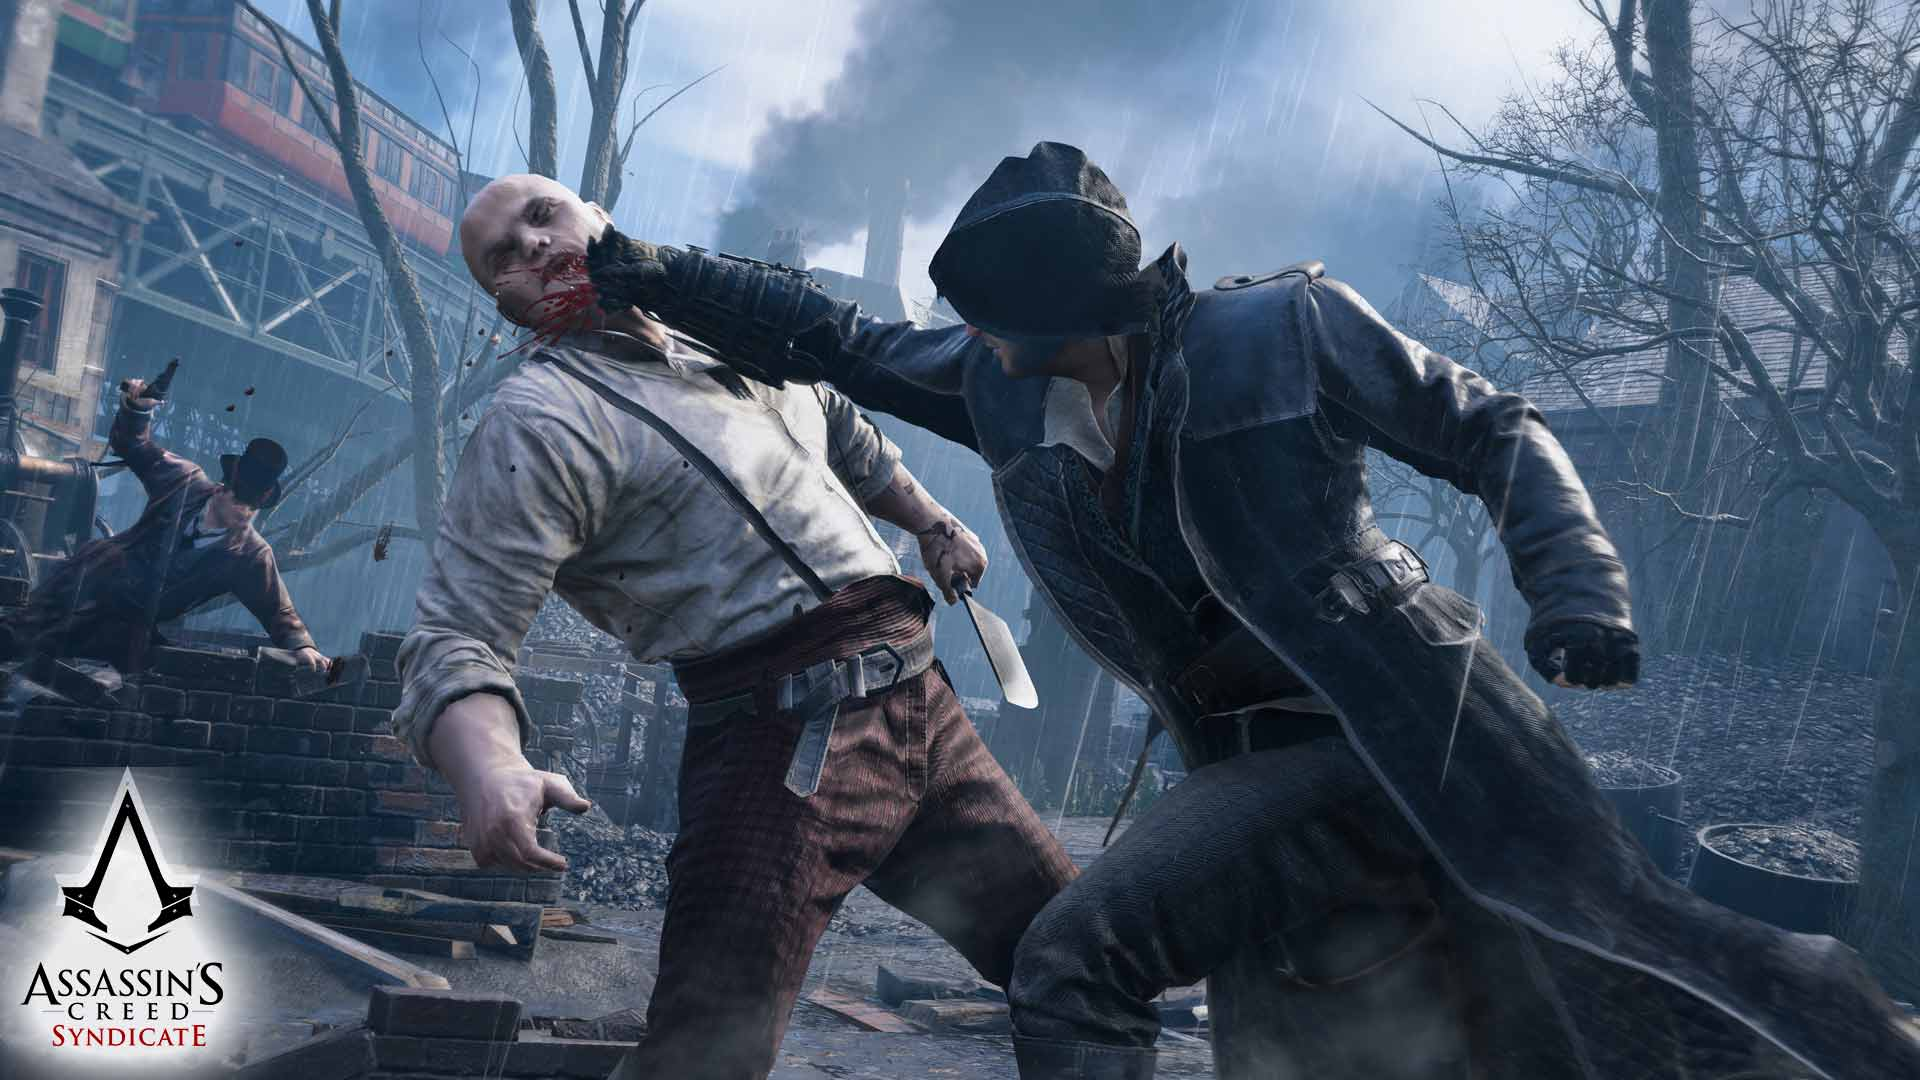 Assassins_Creed_Syndicate_gameli-2f